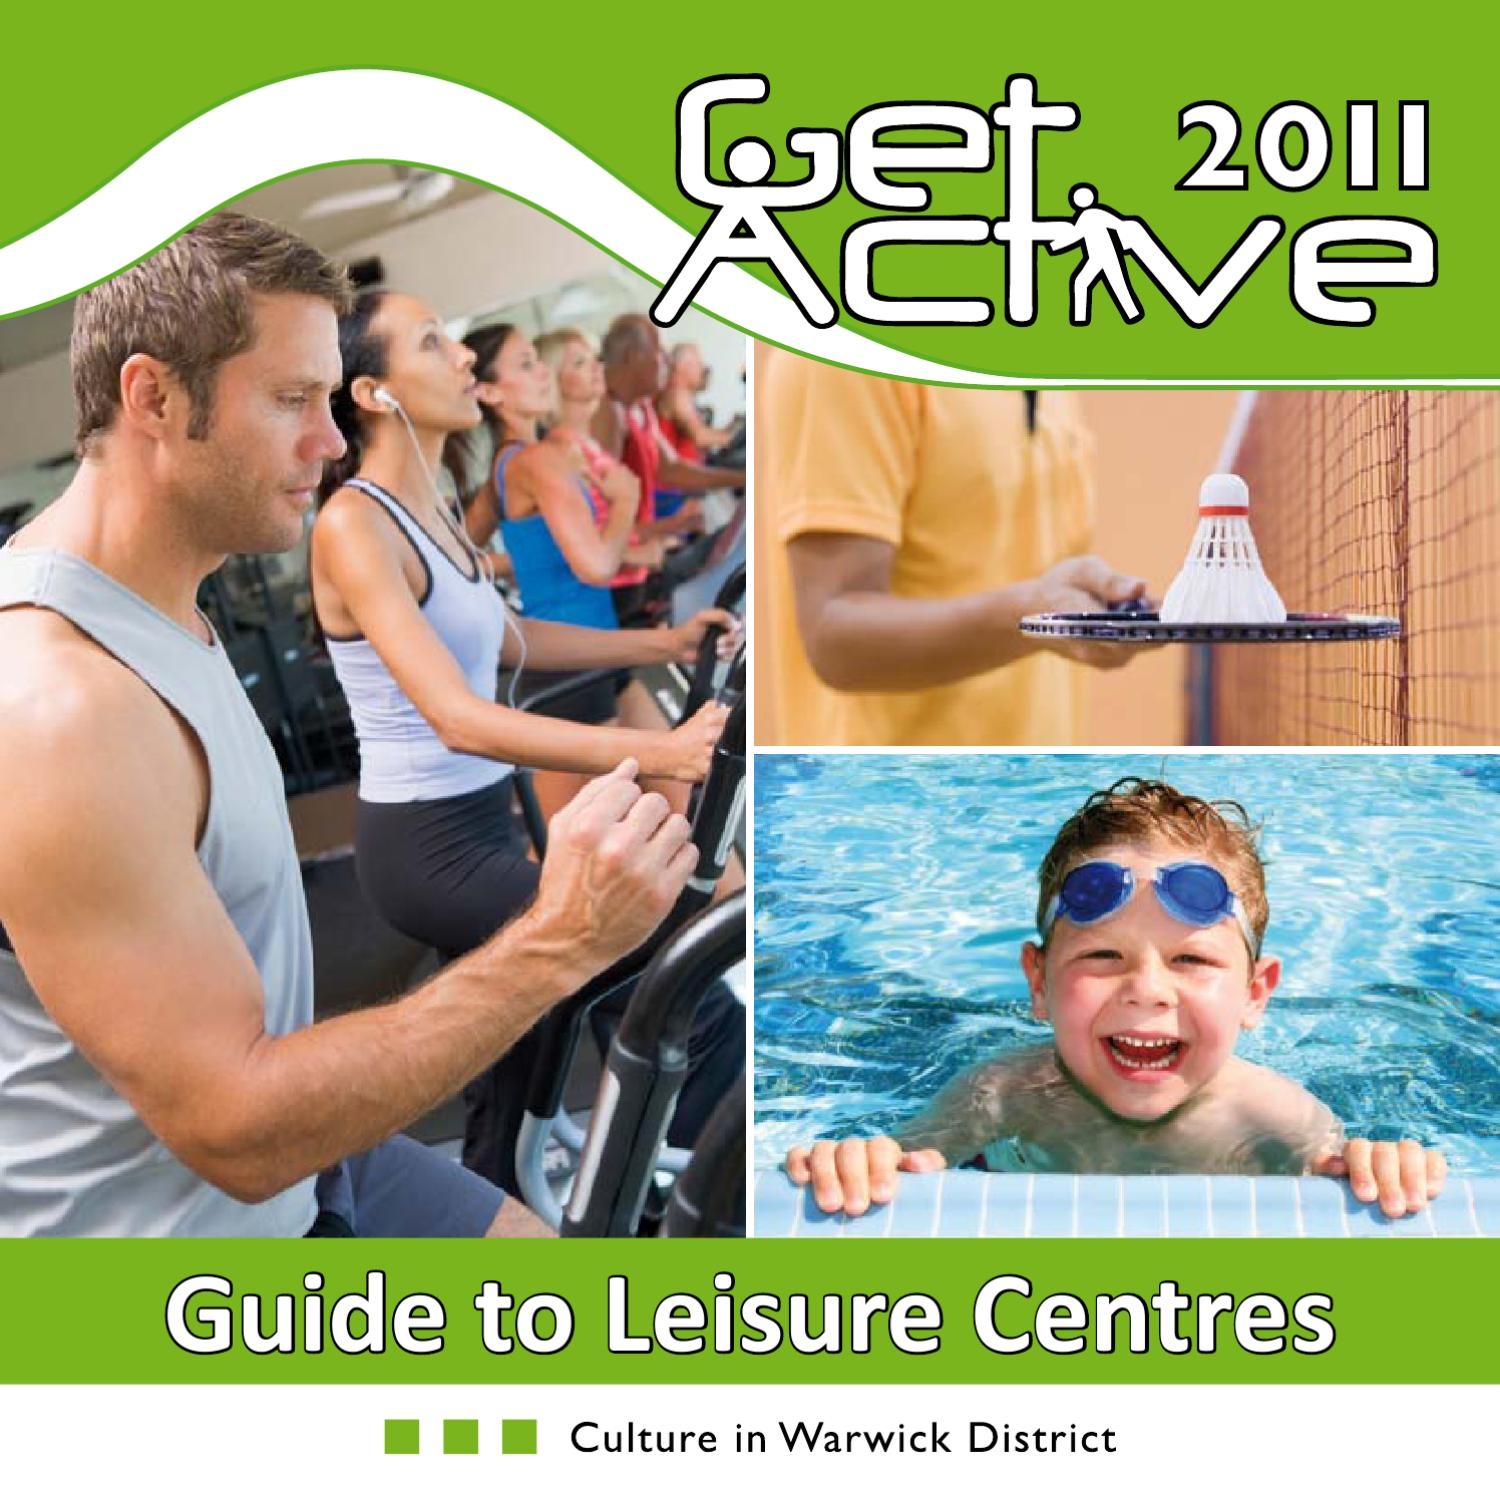 Guide To Leisure Centres 2011 By The Media Room Issuu